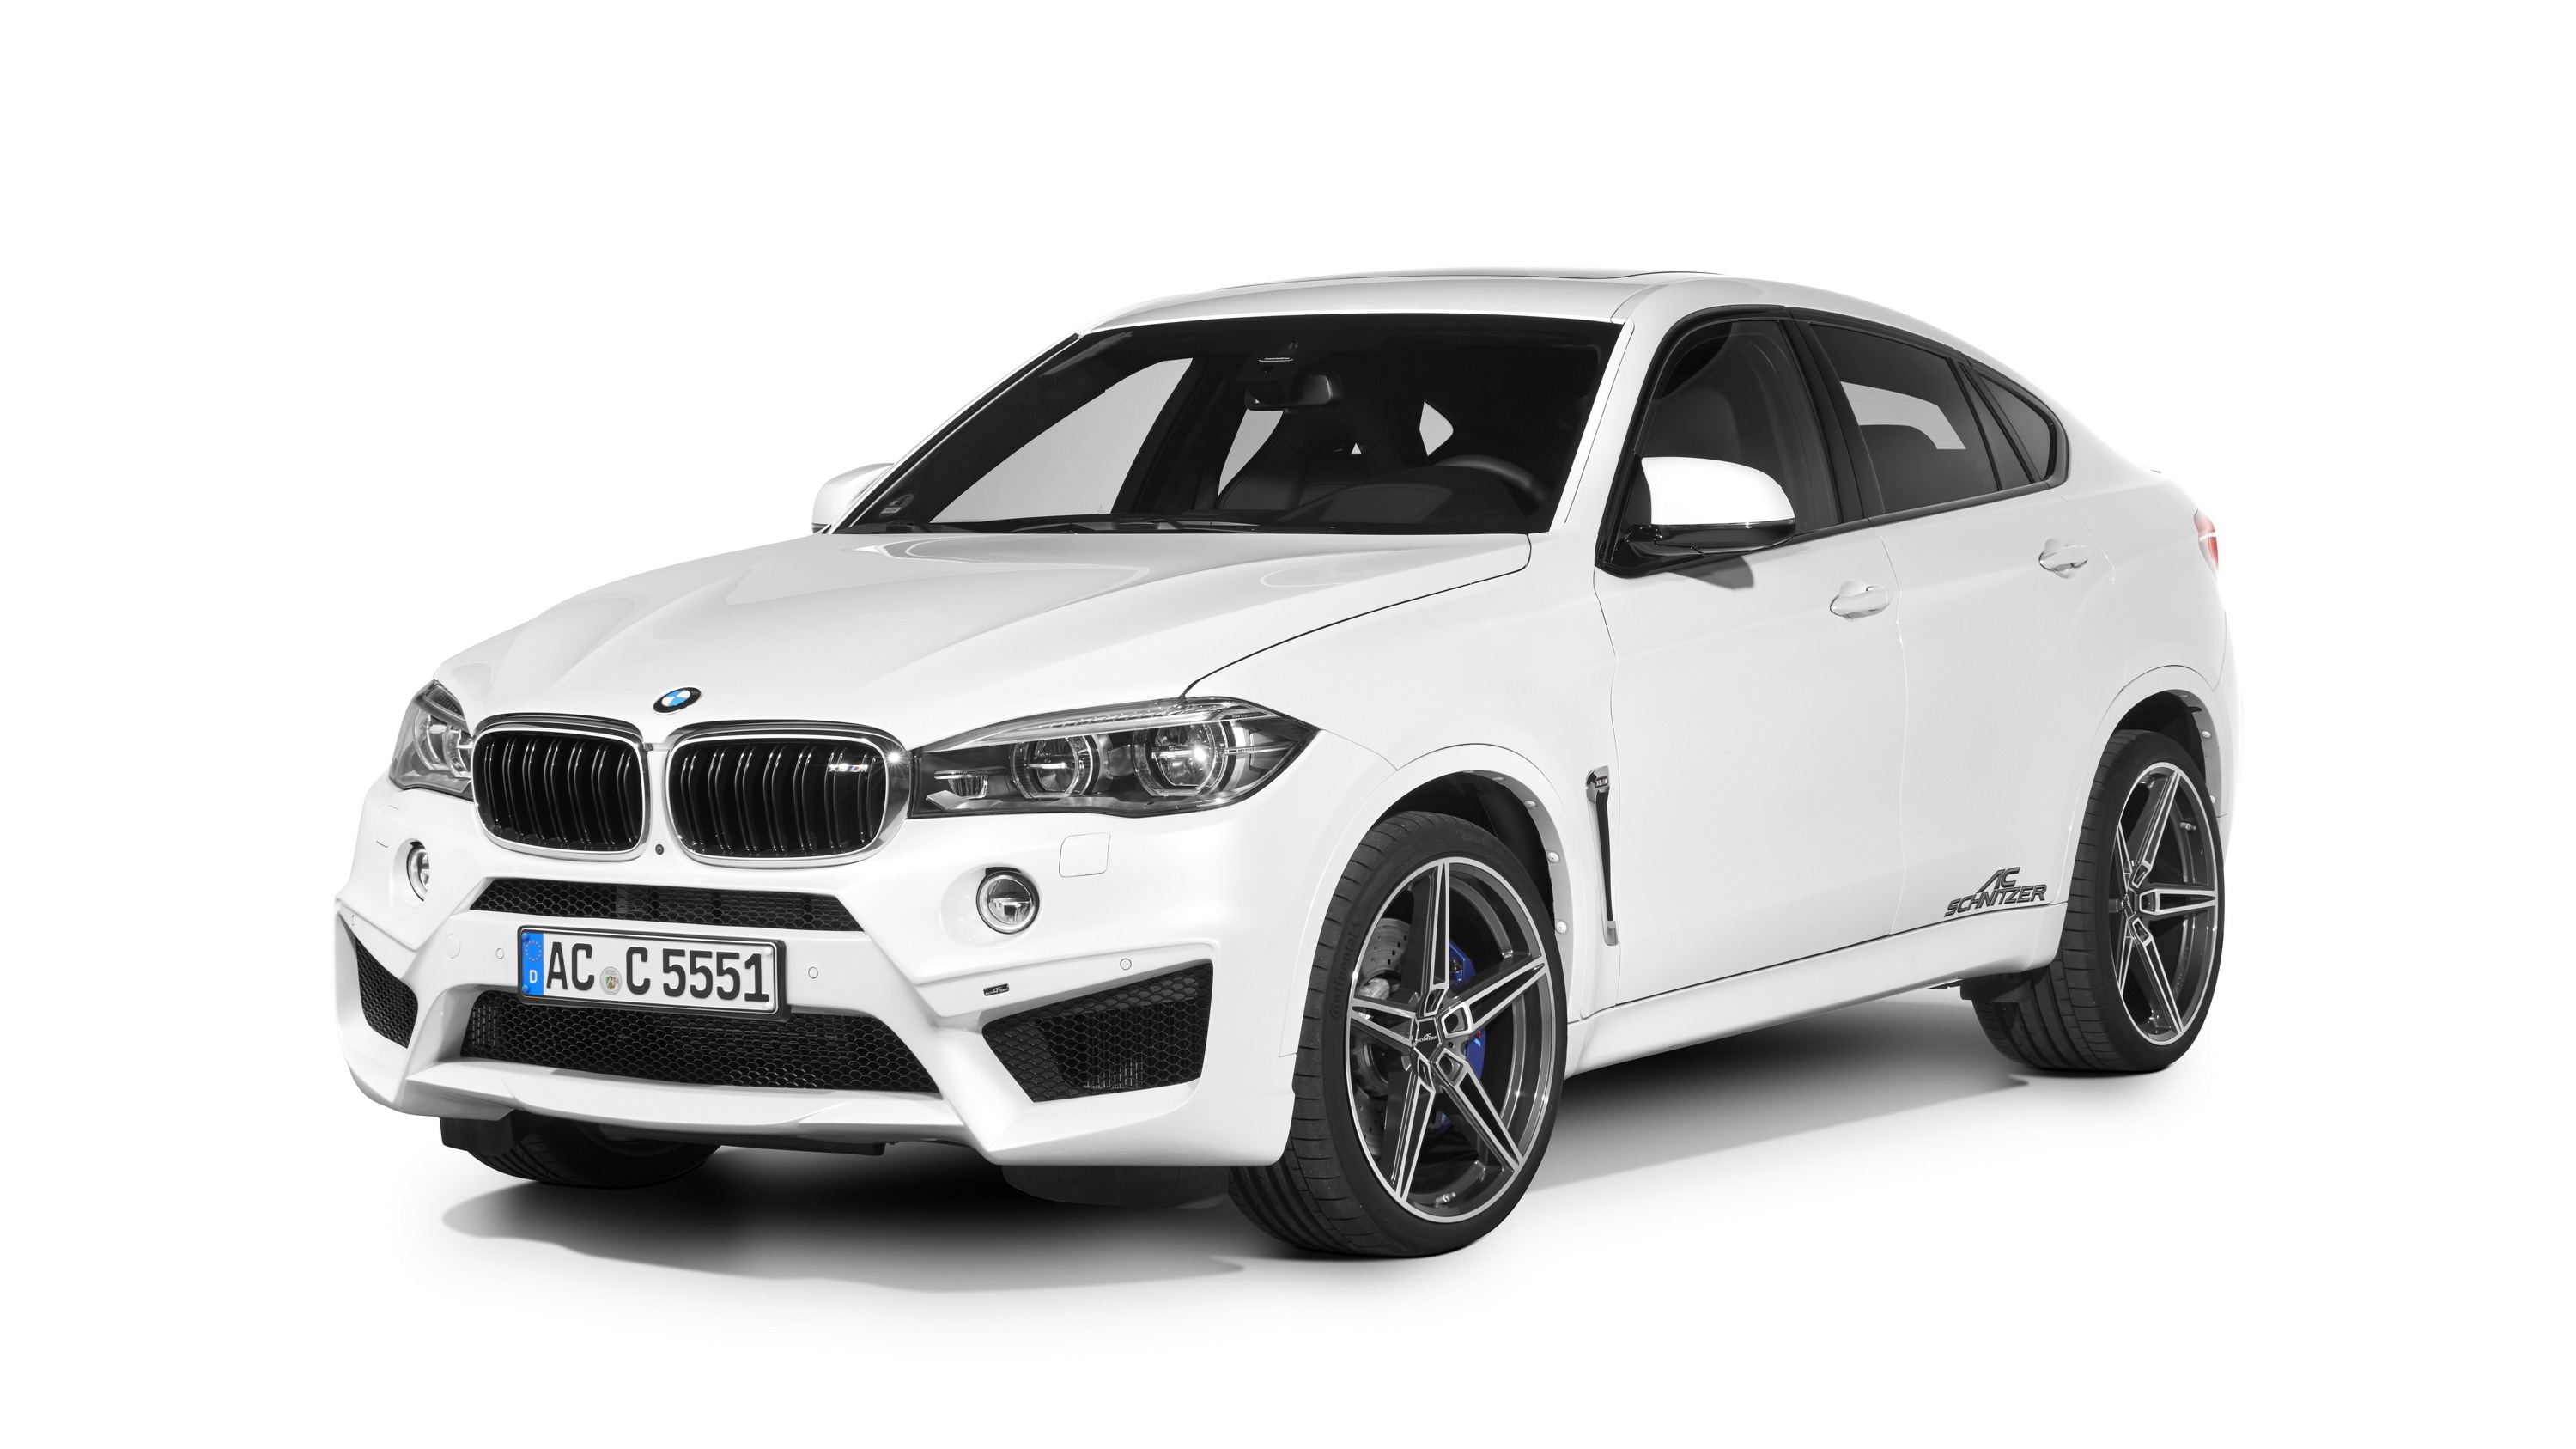 2016 Bmw X6 M By Ac Schnitzer Review Top Speed